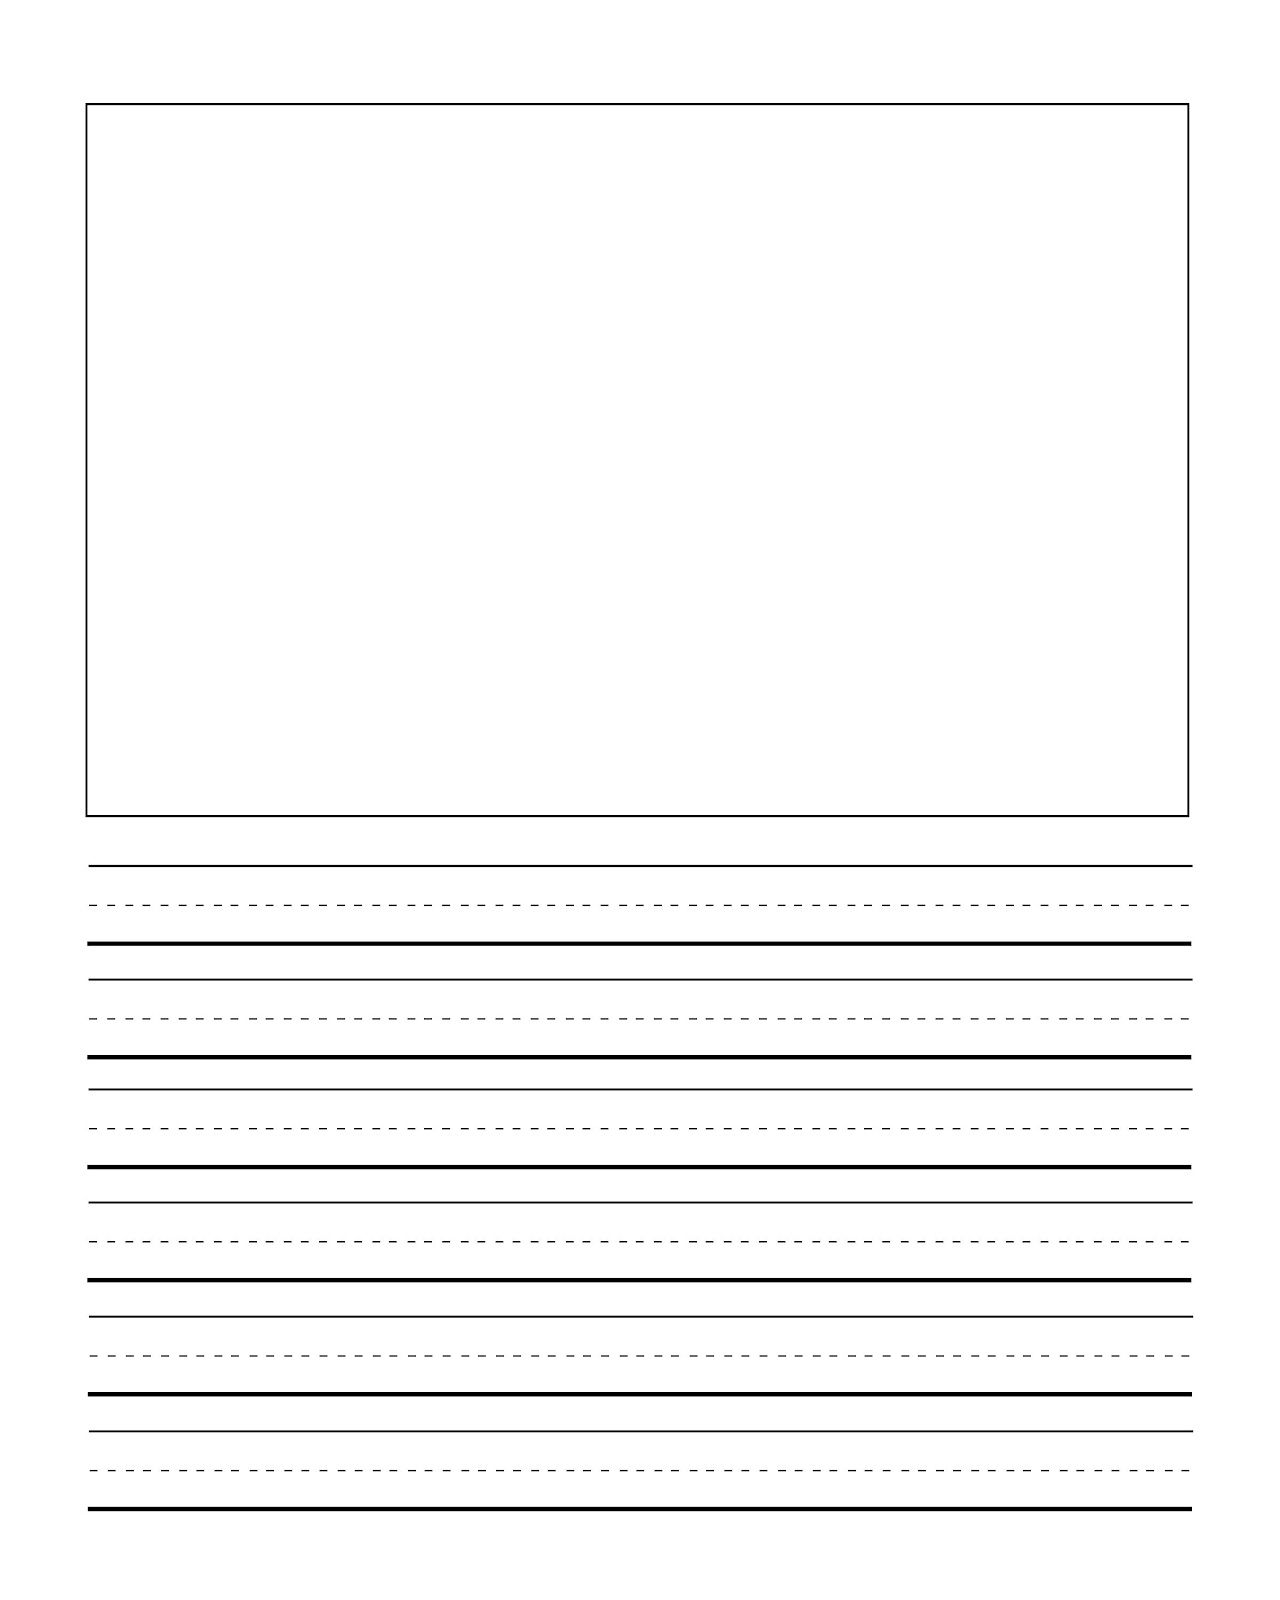 zaner bloser handwriting paper Zaner-bloser manuscript handwriting practice worksheets zaner-bloser® handwriting font style on paper, because all these.